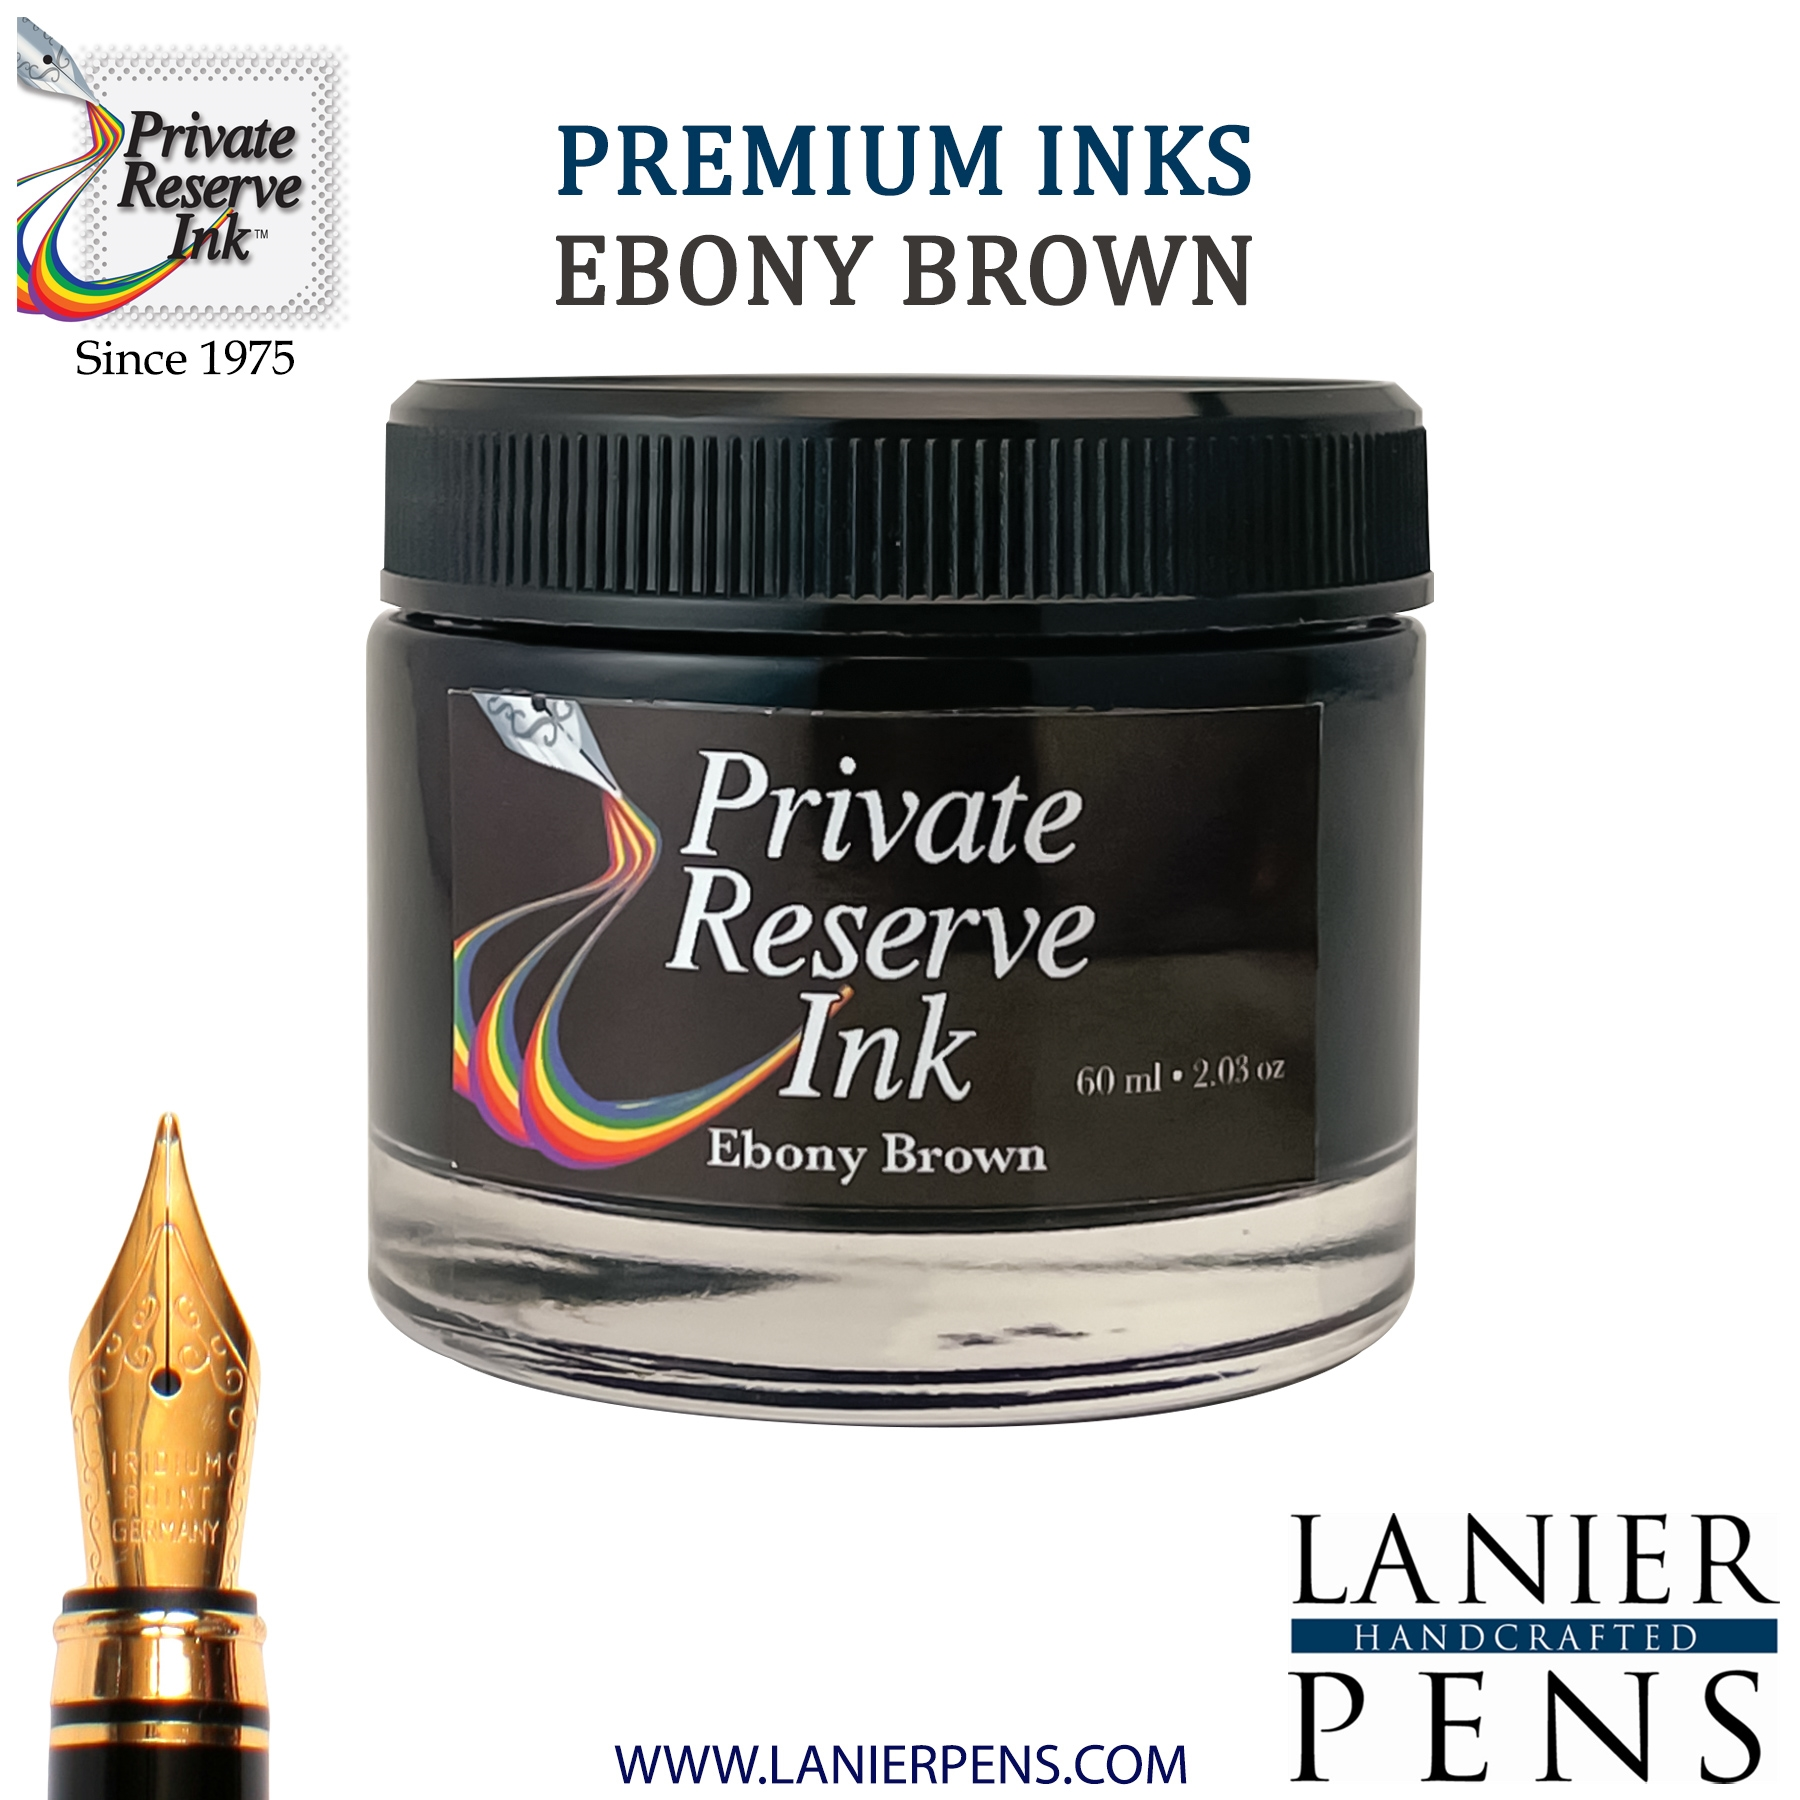 Private Reserve Ebony Brown Fountain Pen Ink Bottle 42-ebb Lanier Pens